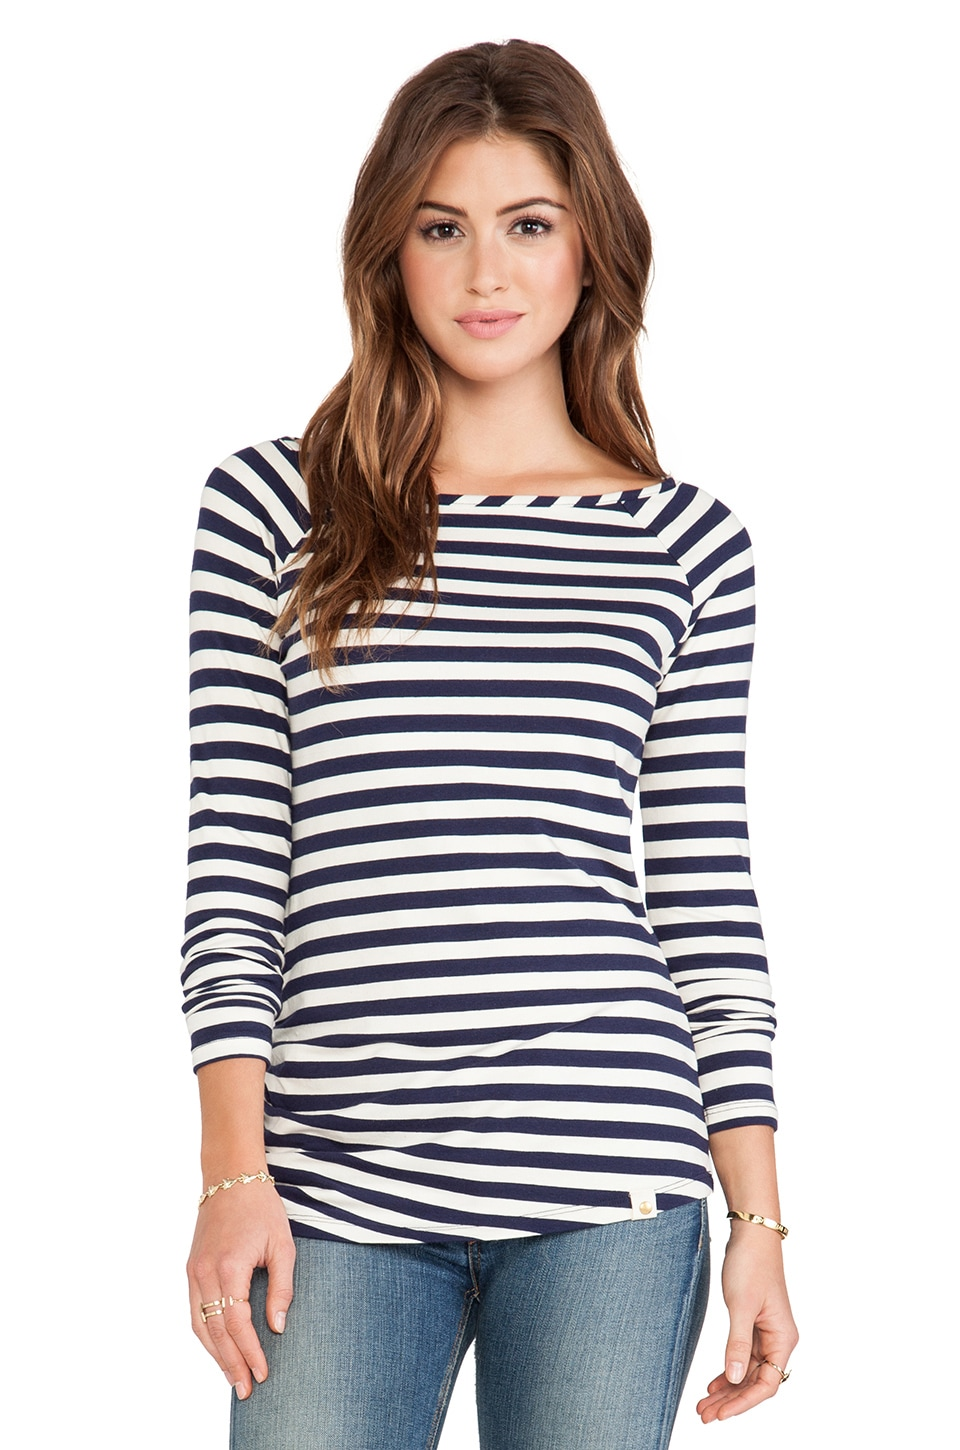 amour vert Chelsi Tee in Navy Stripes